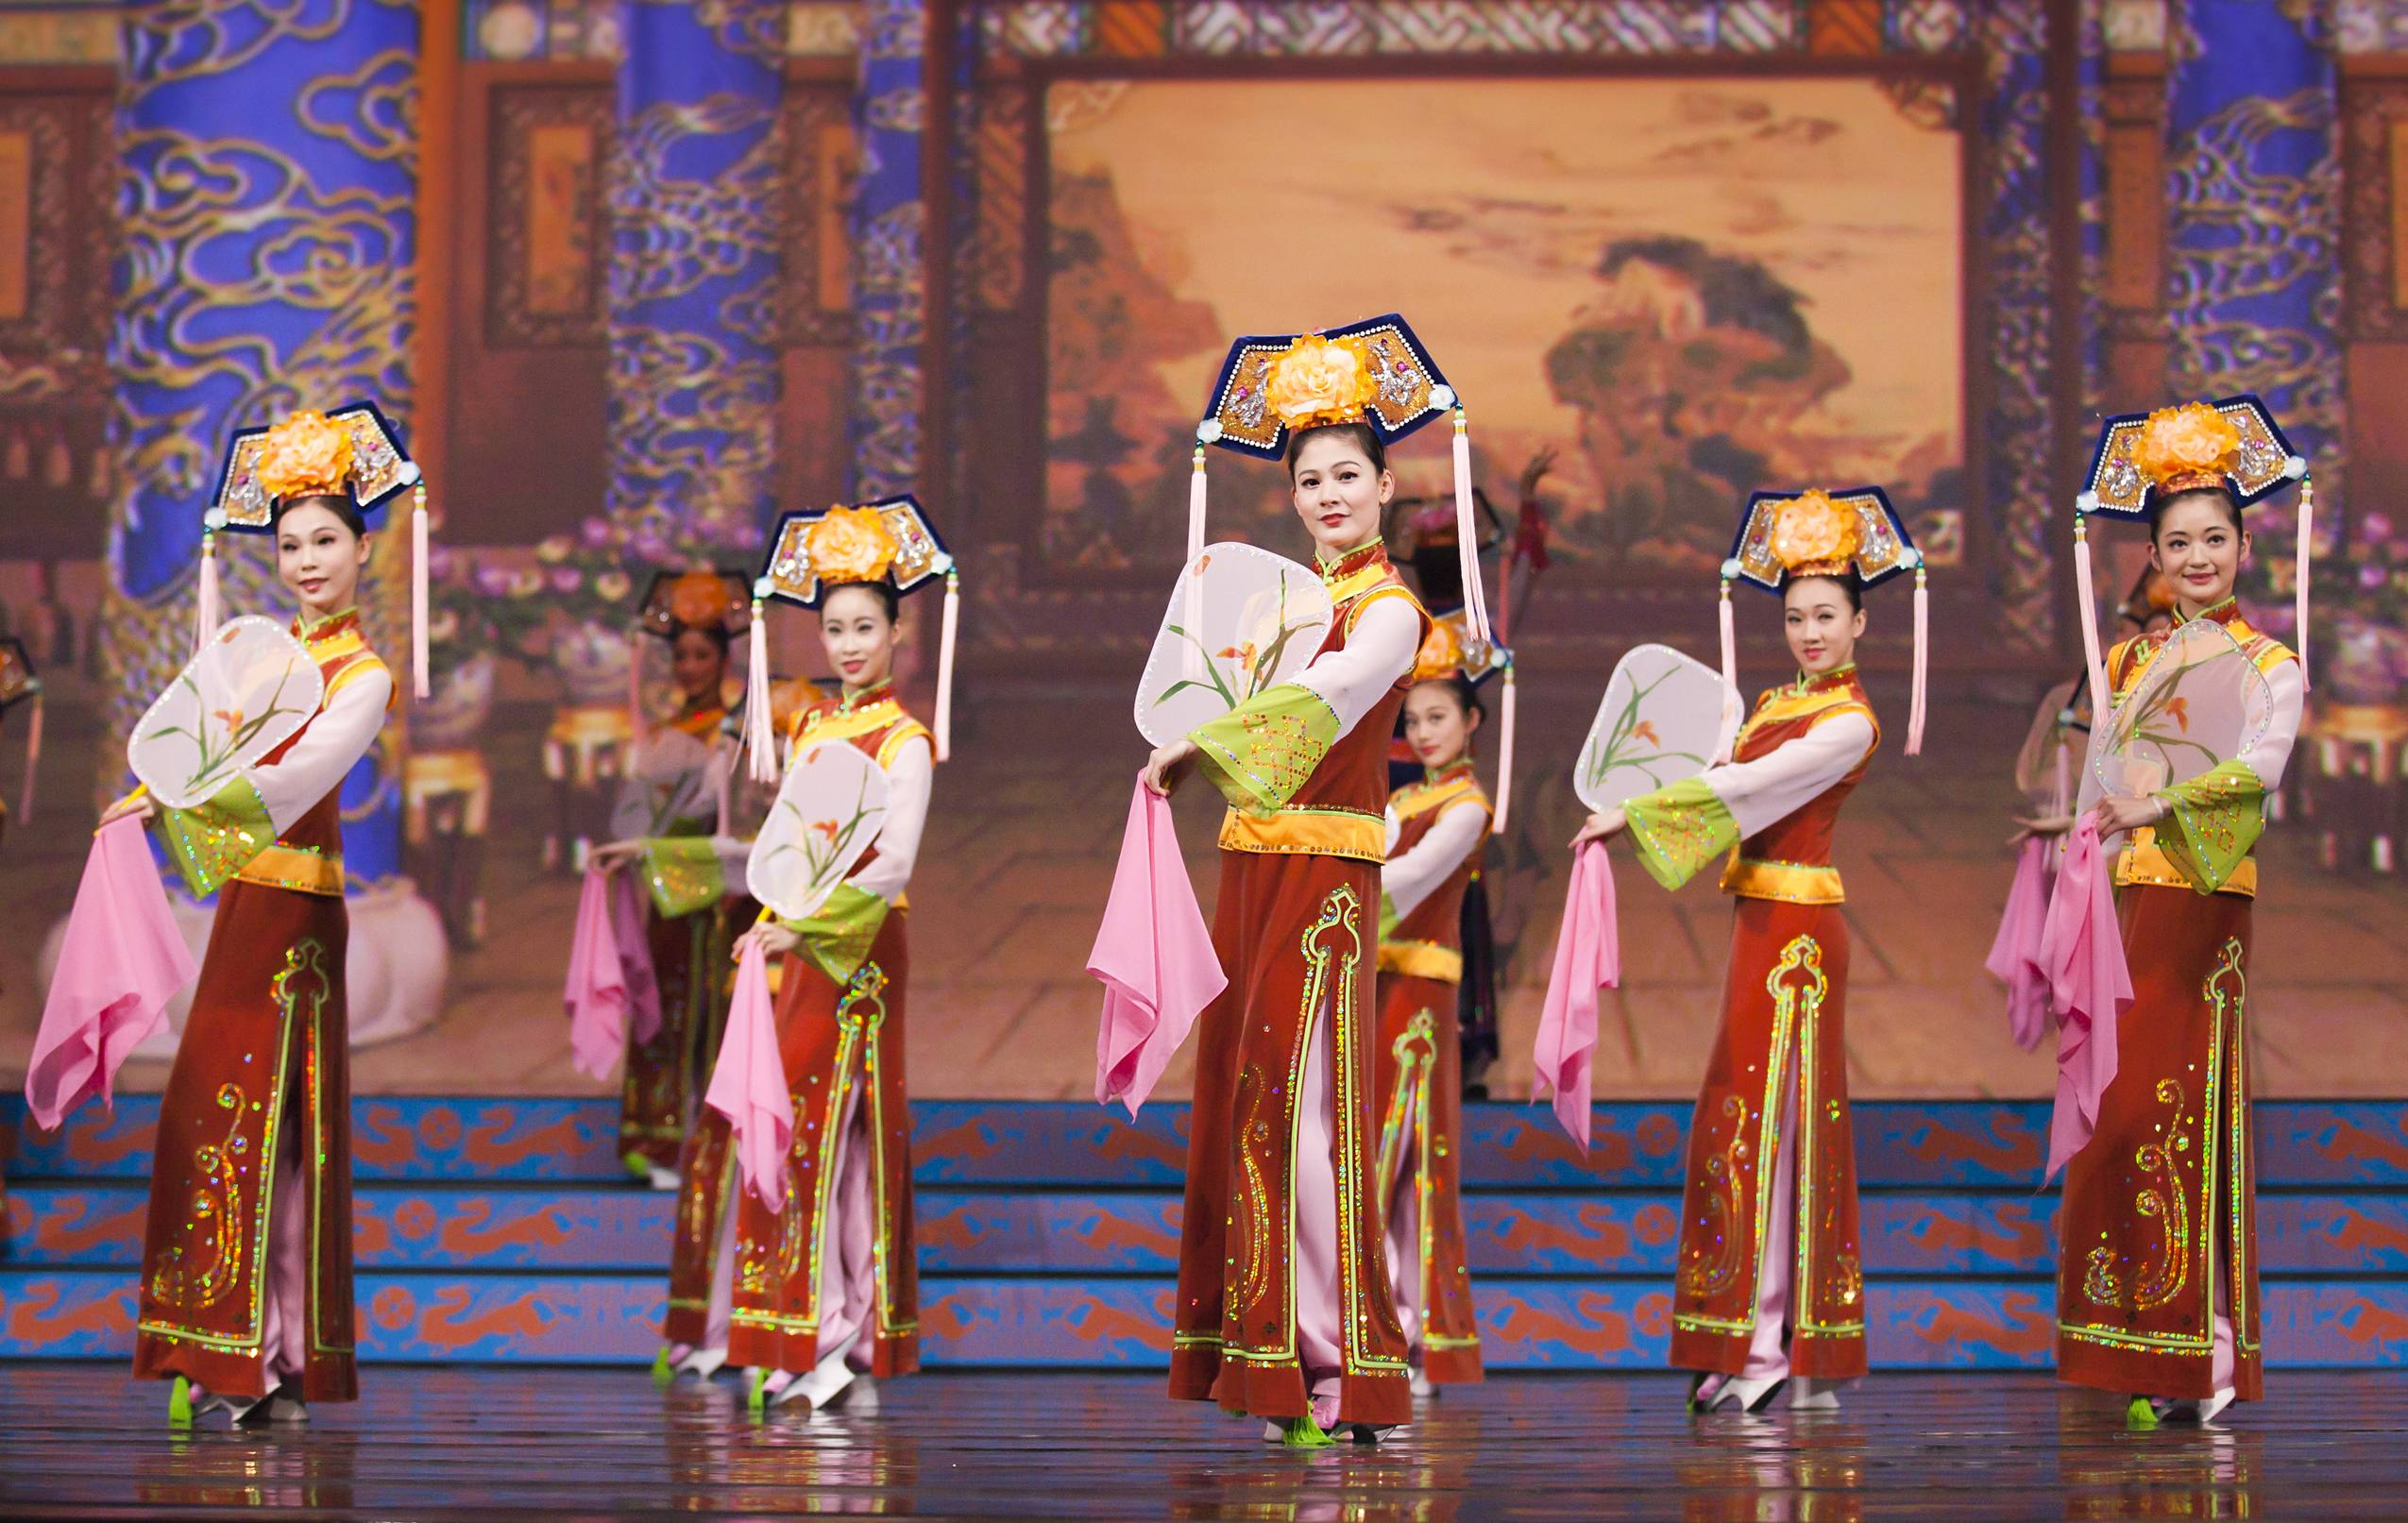 Shen Yun Performing Arts Comes to New York's Lincoln Center